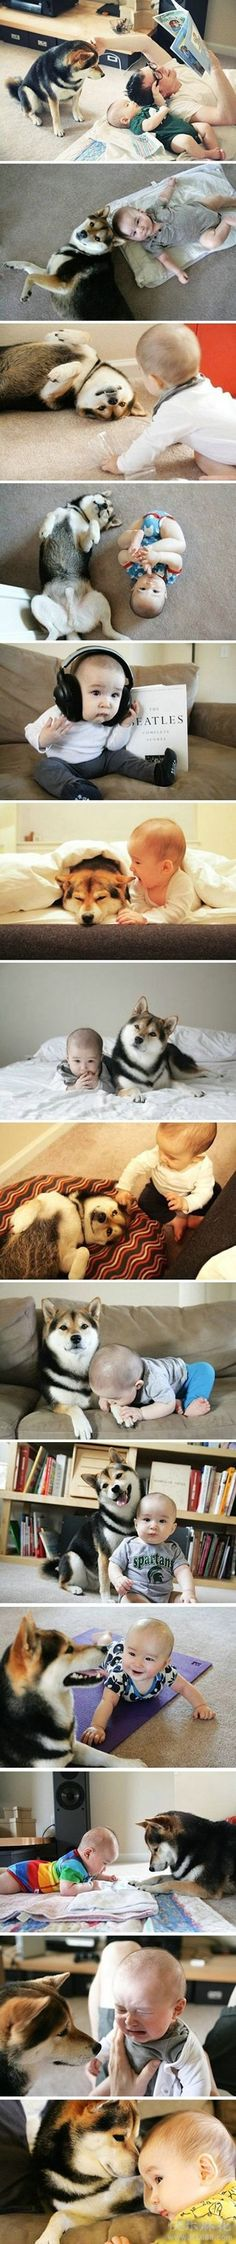 I can't handle how cute this is! <3